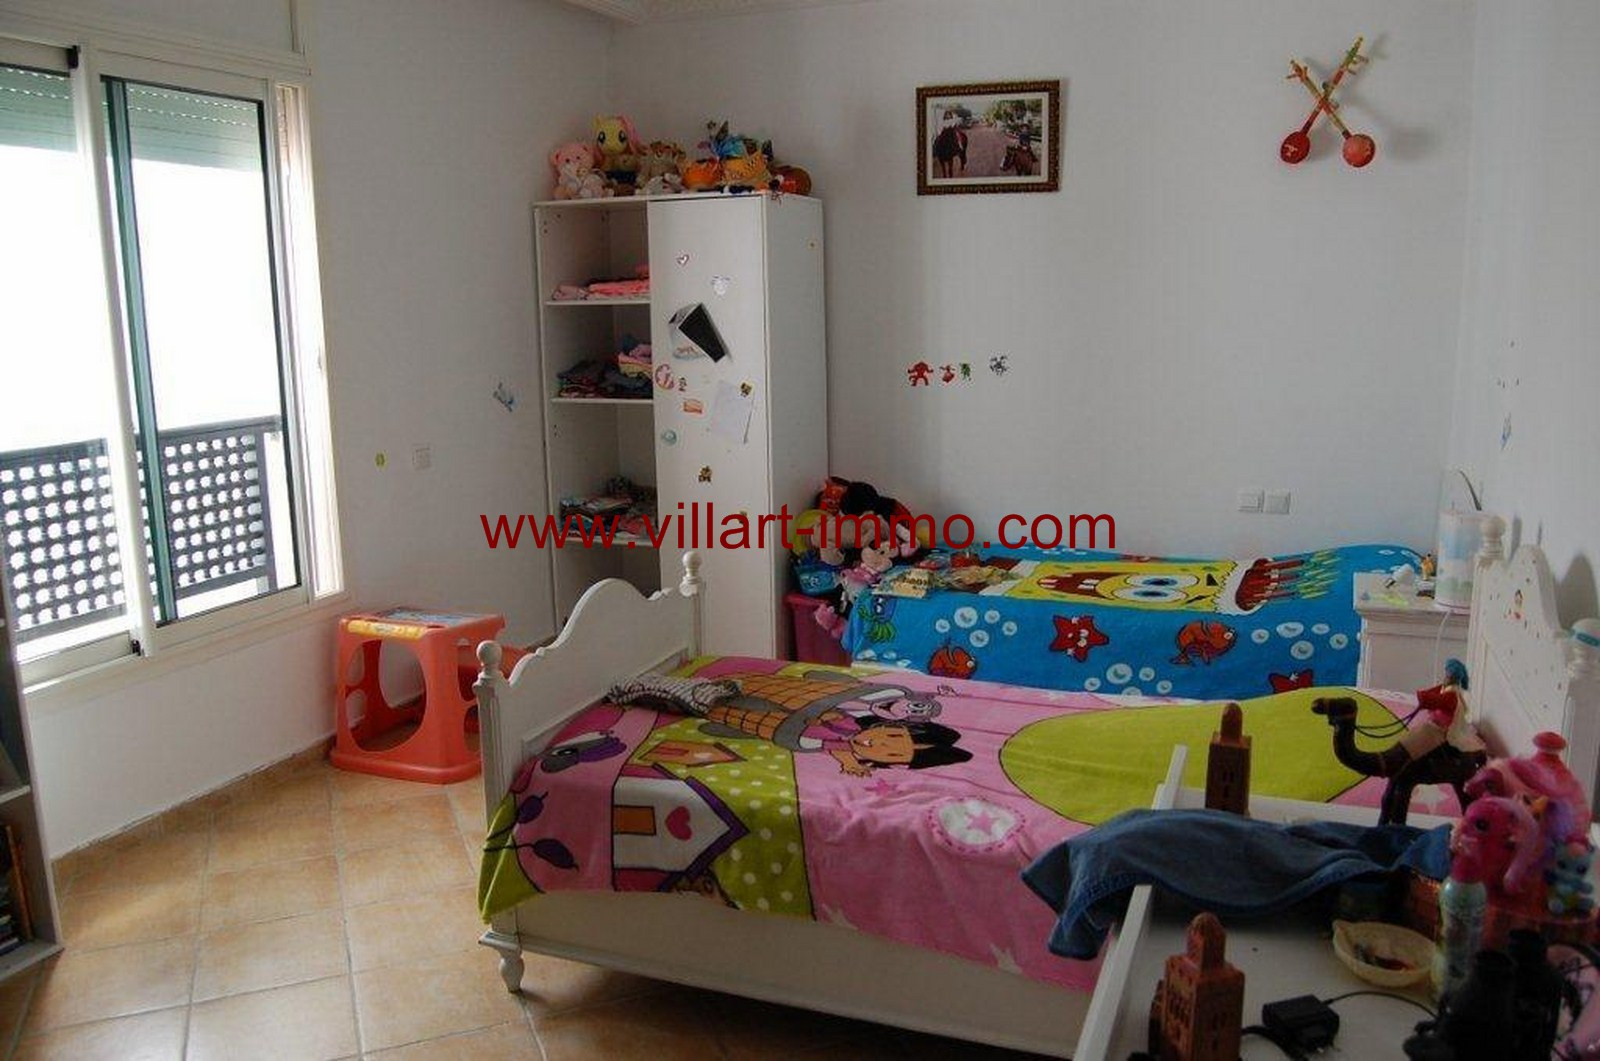 6-For-Sale-Villa-Tangier-Malabata-Bedroom 2-VV354-Villart Immo